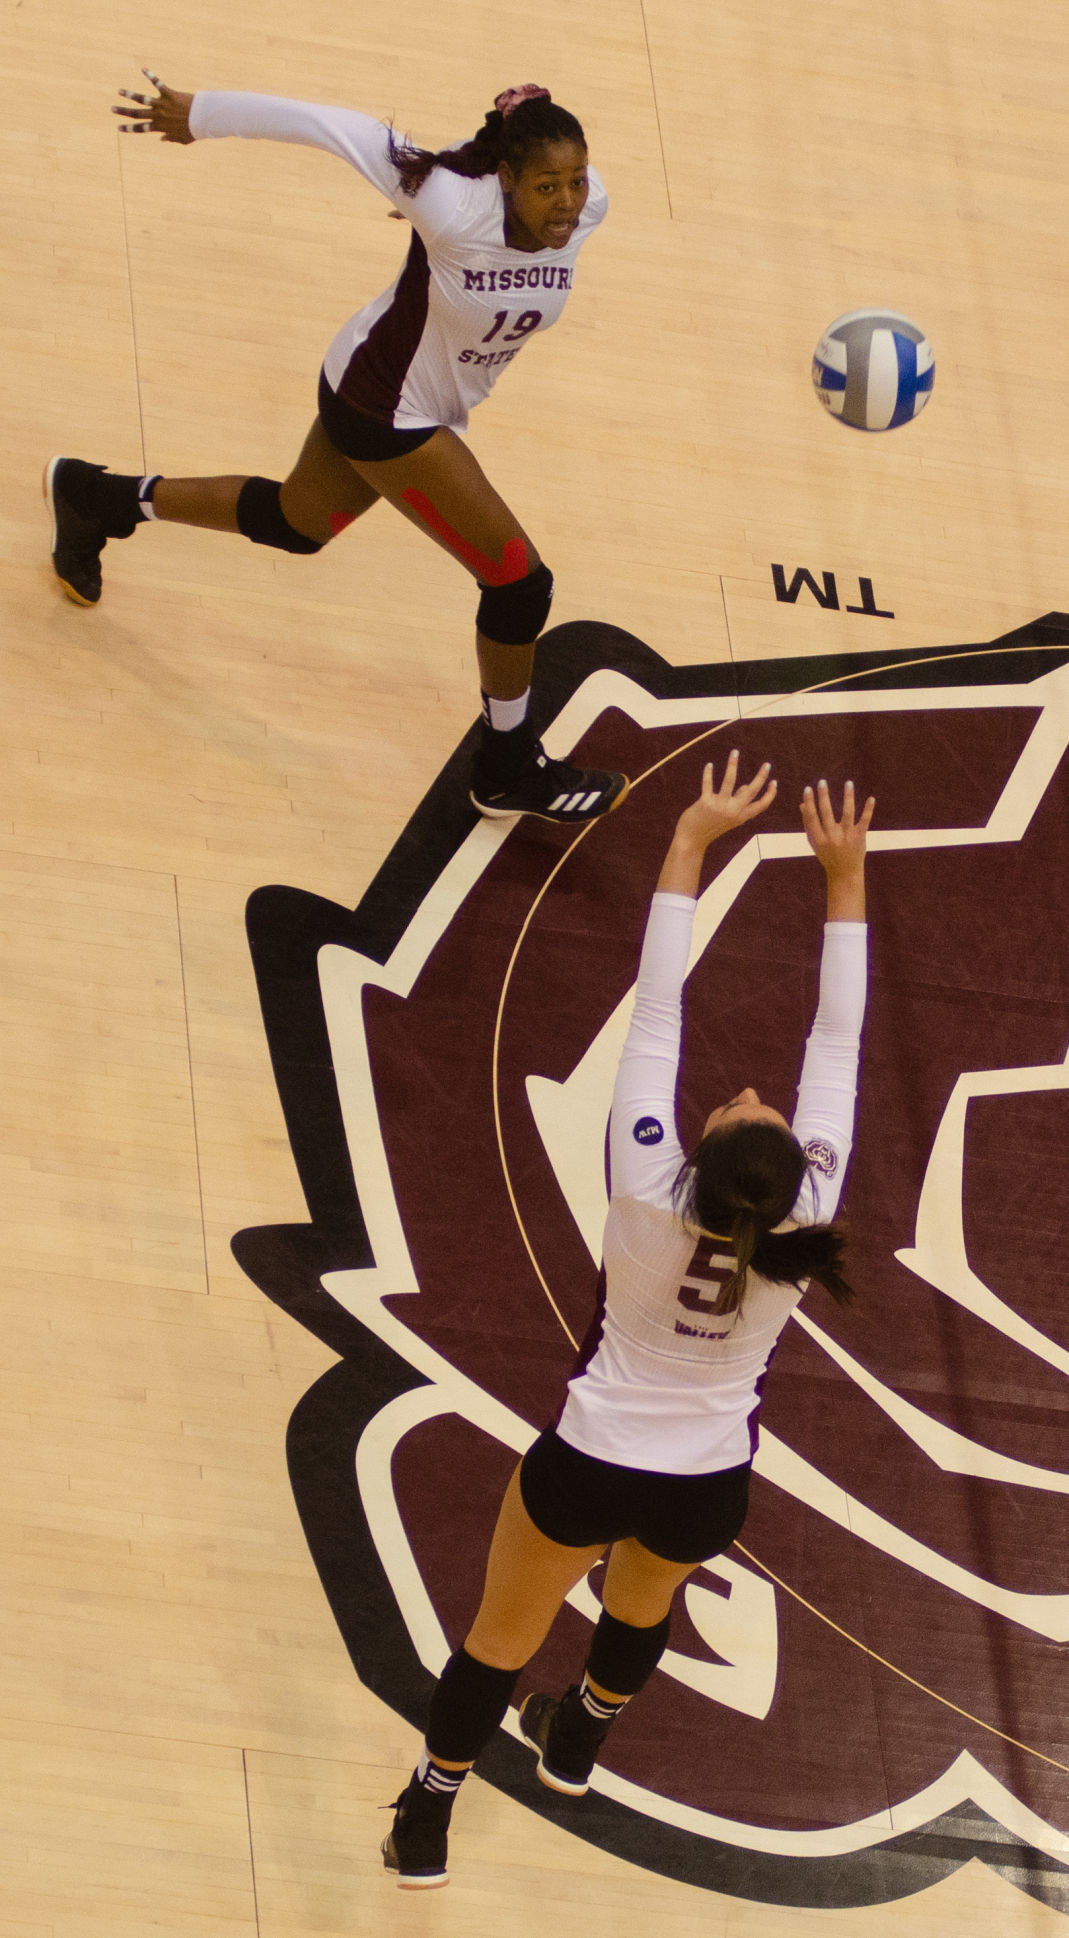 Chloe Rear sets the ball to freshman Azyah Green